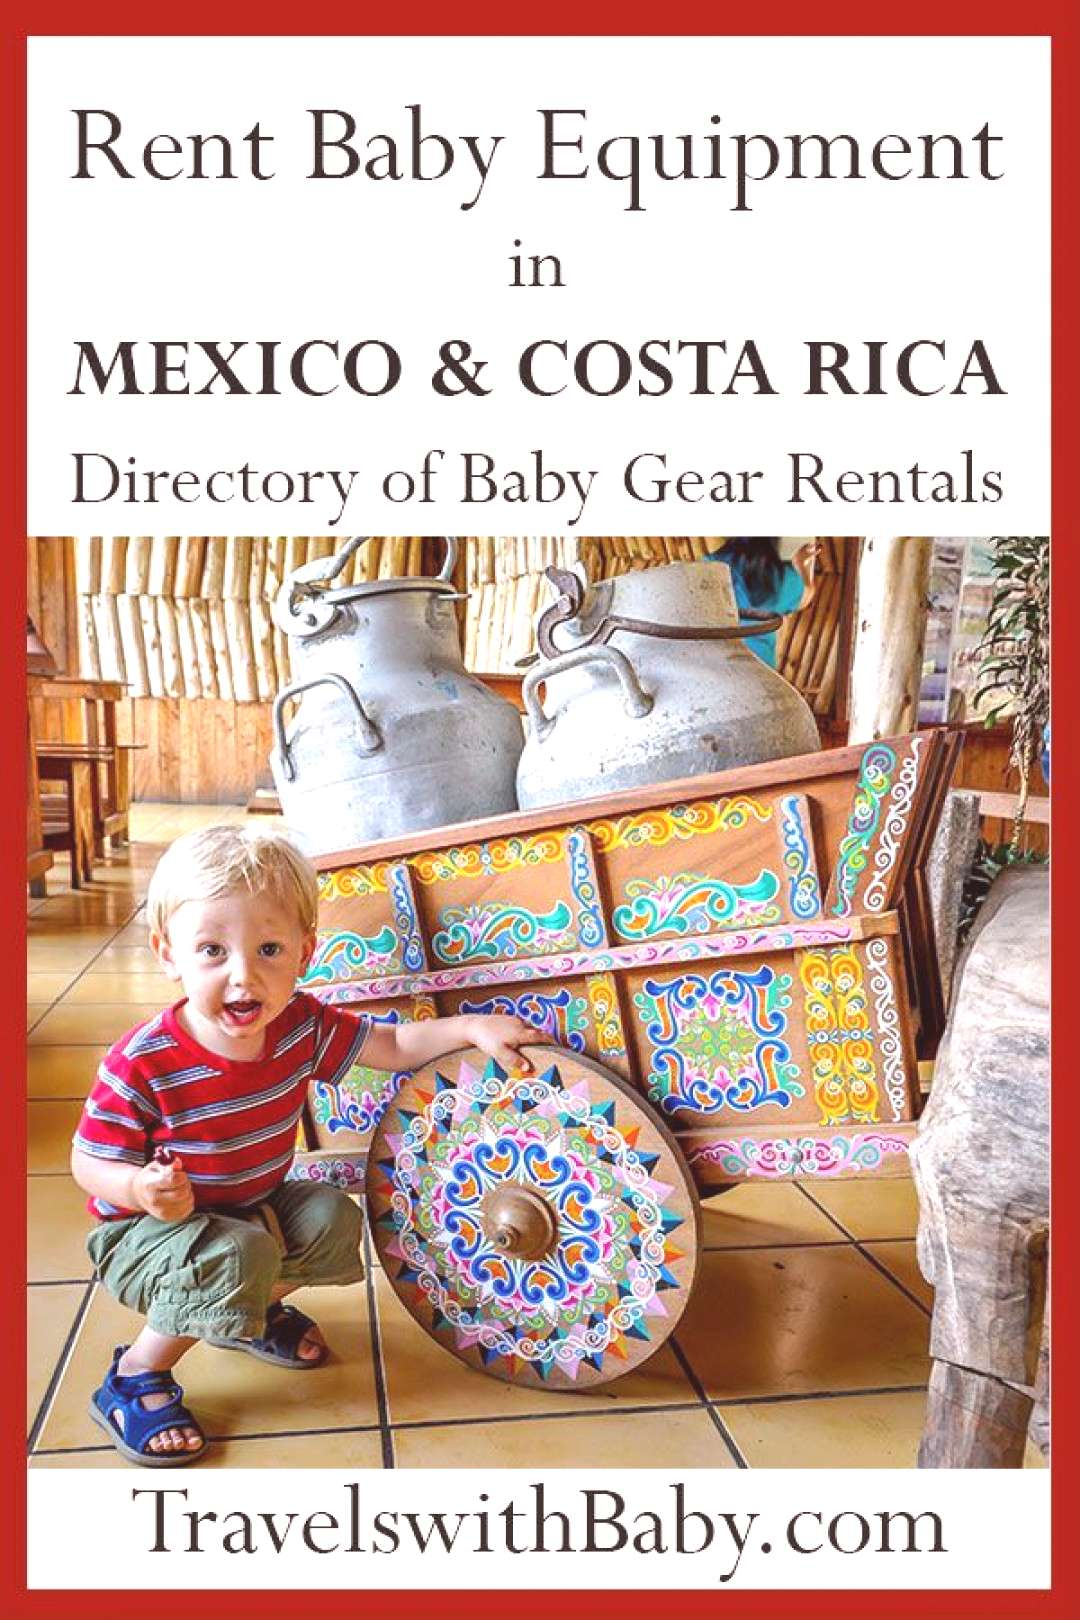 Rent Baby Gear - Mexico and Central America Equipment Hire Rent baby equipment in Mexico and Costa